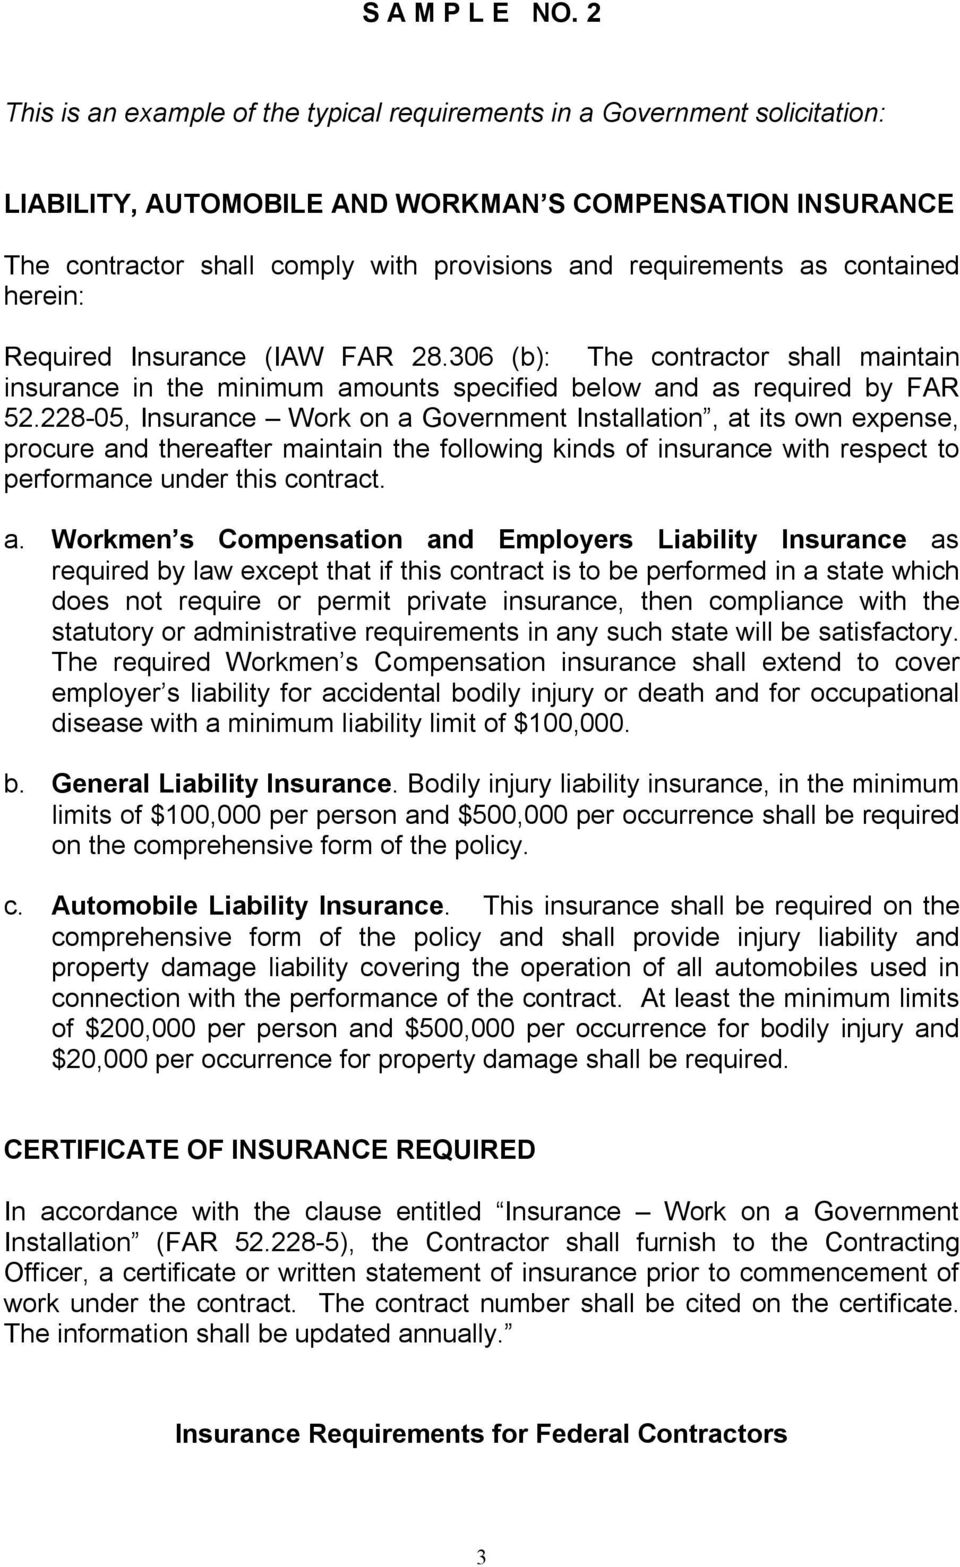 as contained herein: Required Insurance (IAW FAR 28.306 (b): The contractor shall maintain insurance in the minimum amounts specified below and as required by FAR 52.